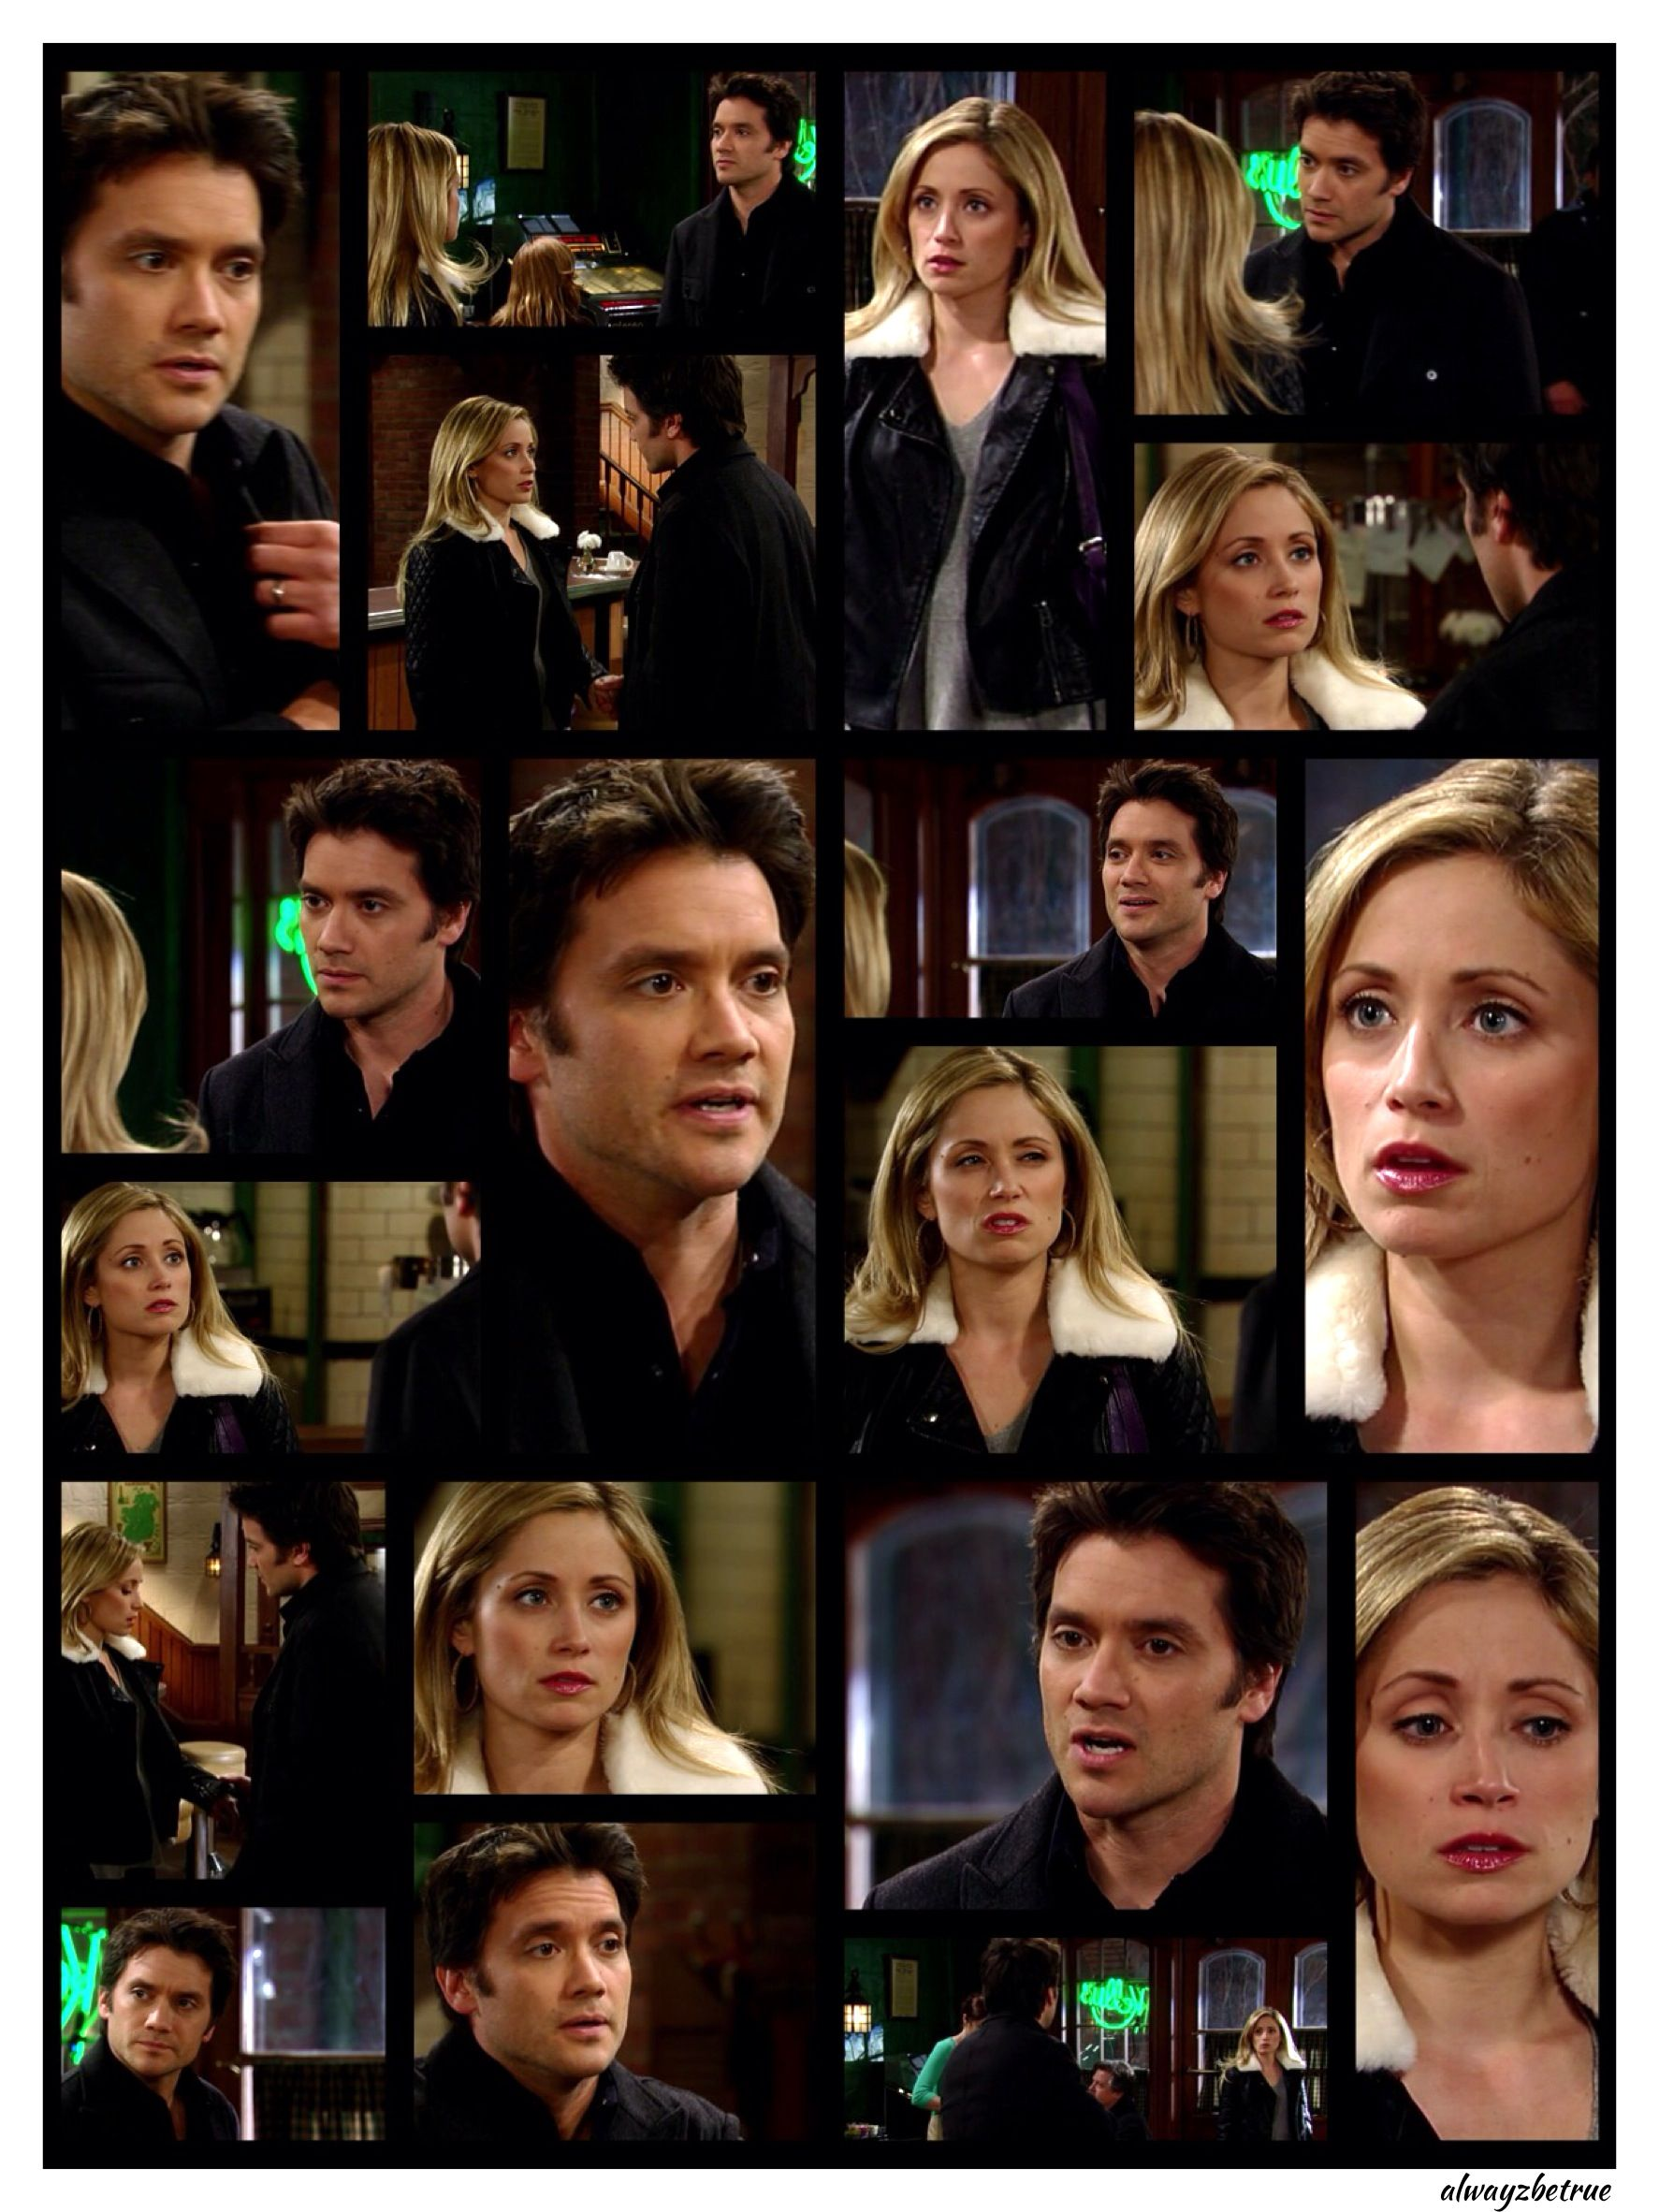 #GH *Fans if used (re-pinned) please keep/give credit (alwayzbetrue)* #Lante Lulu and Dante